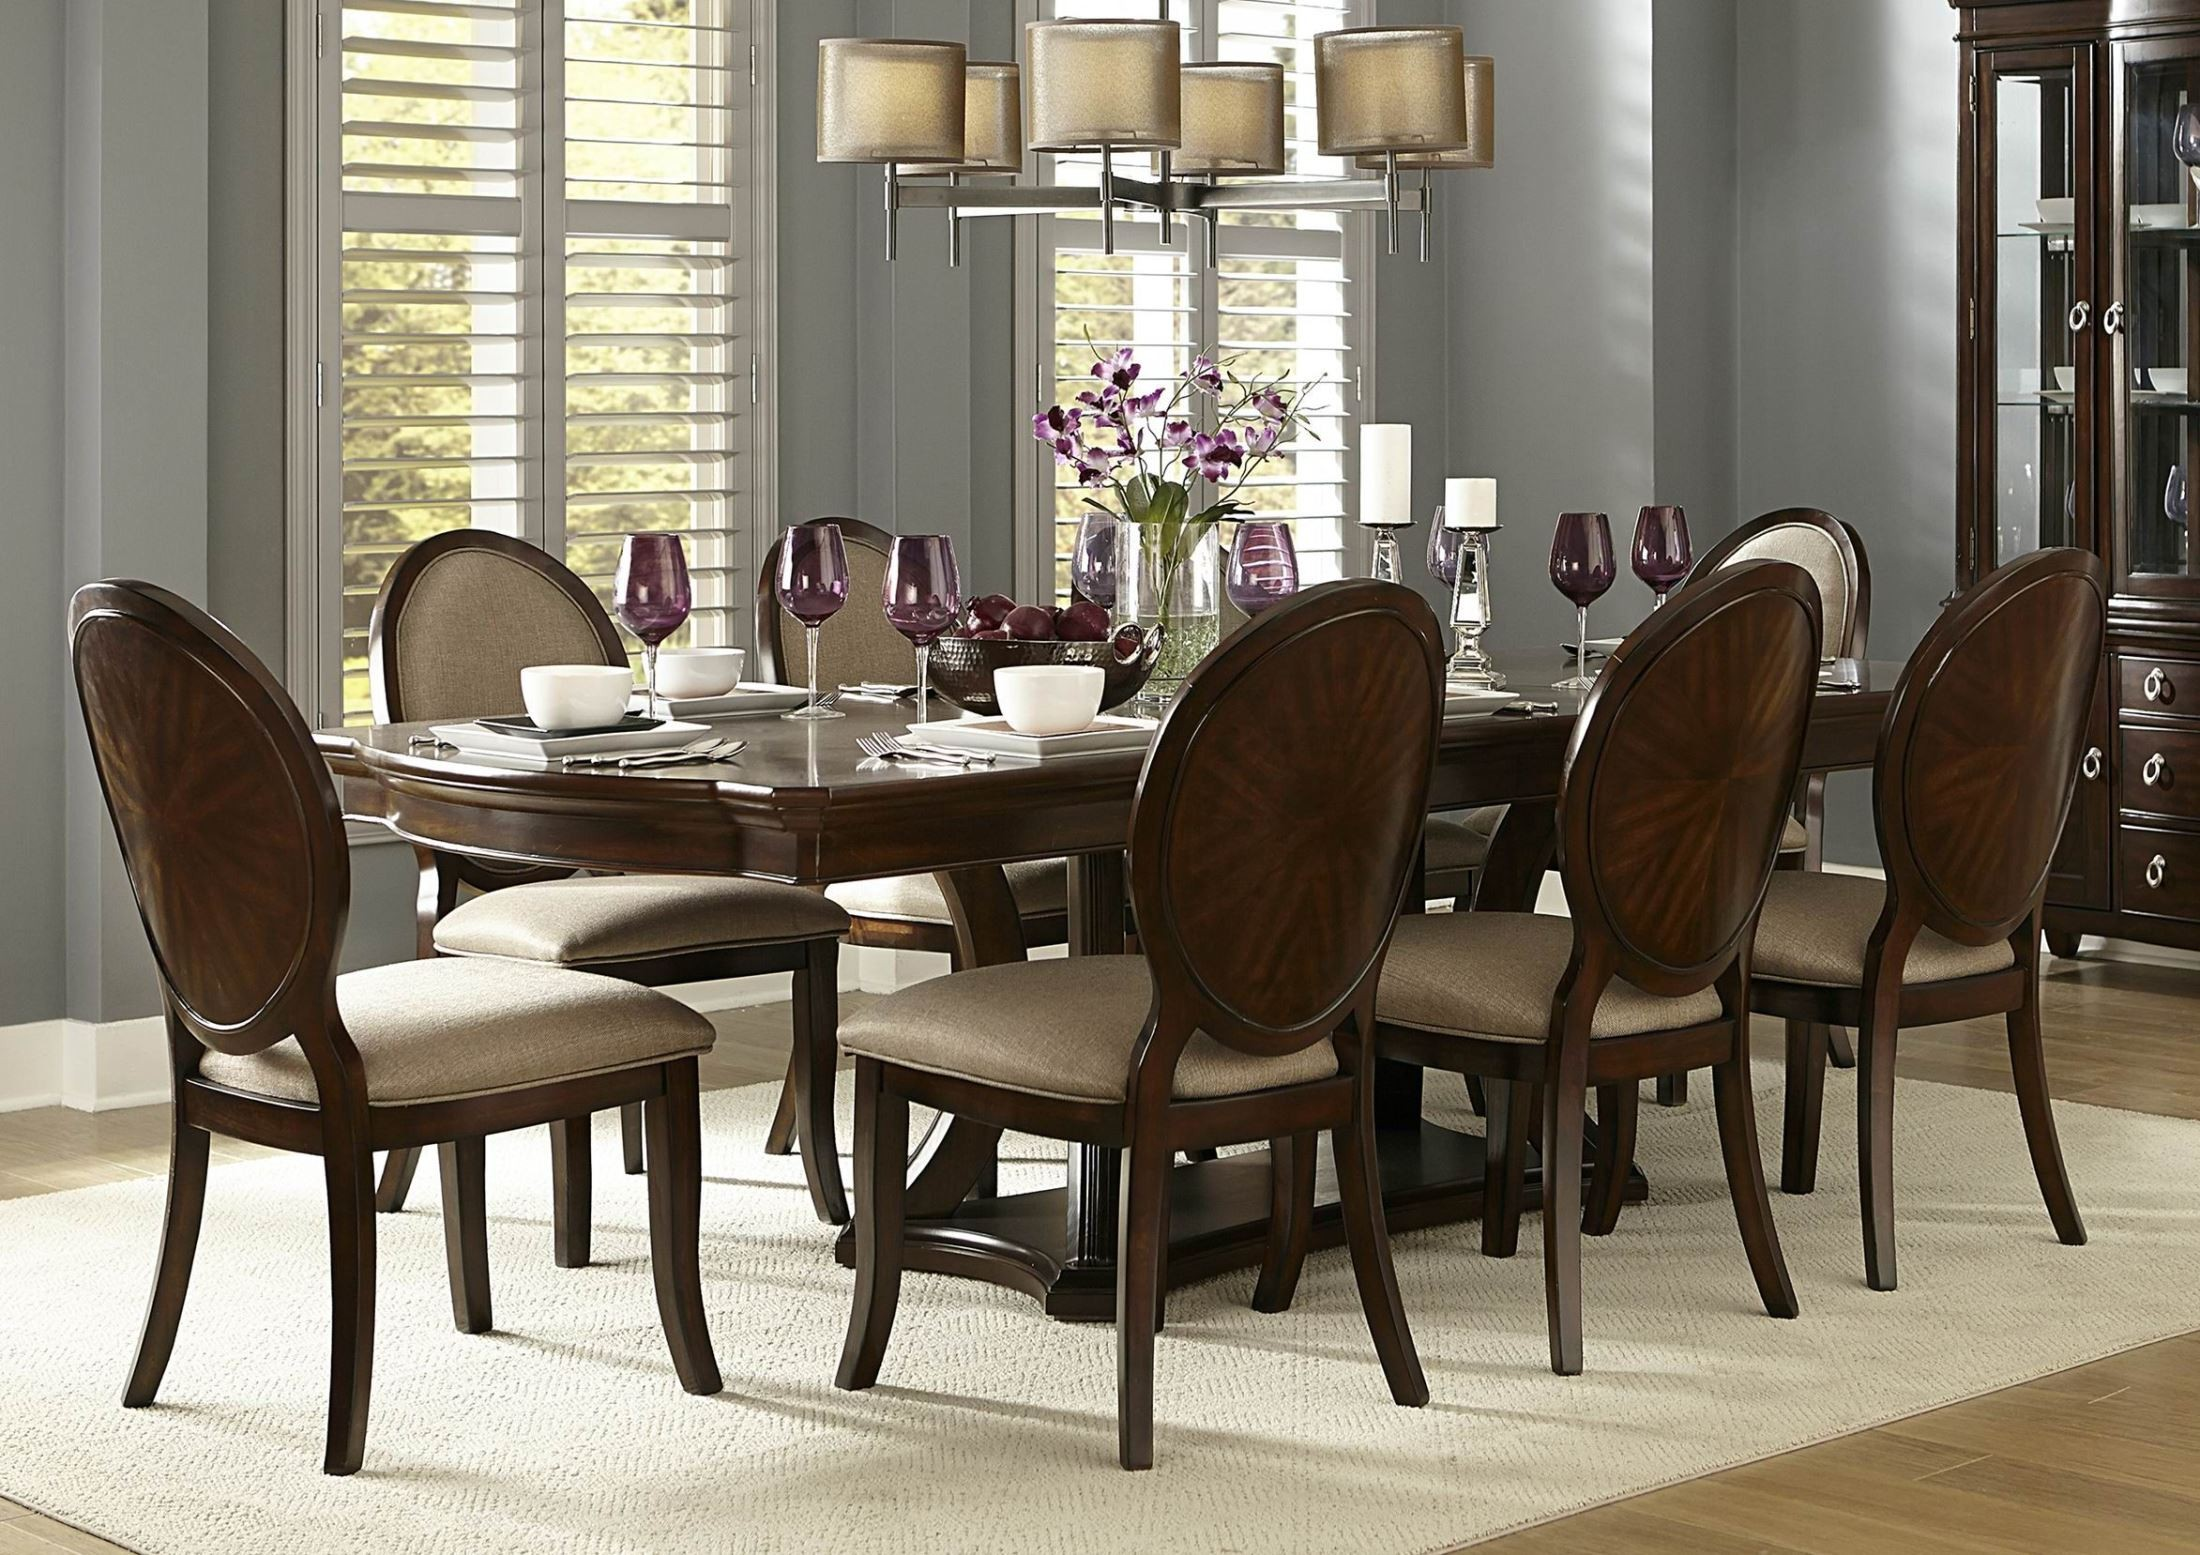 Delavan rich brown cherry extendable dining room set from for Cherry dining room set